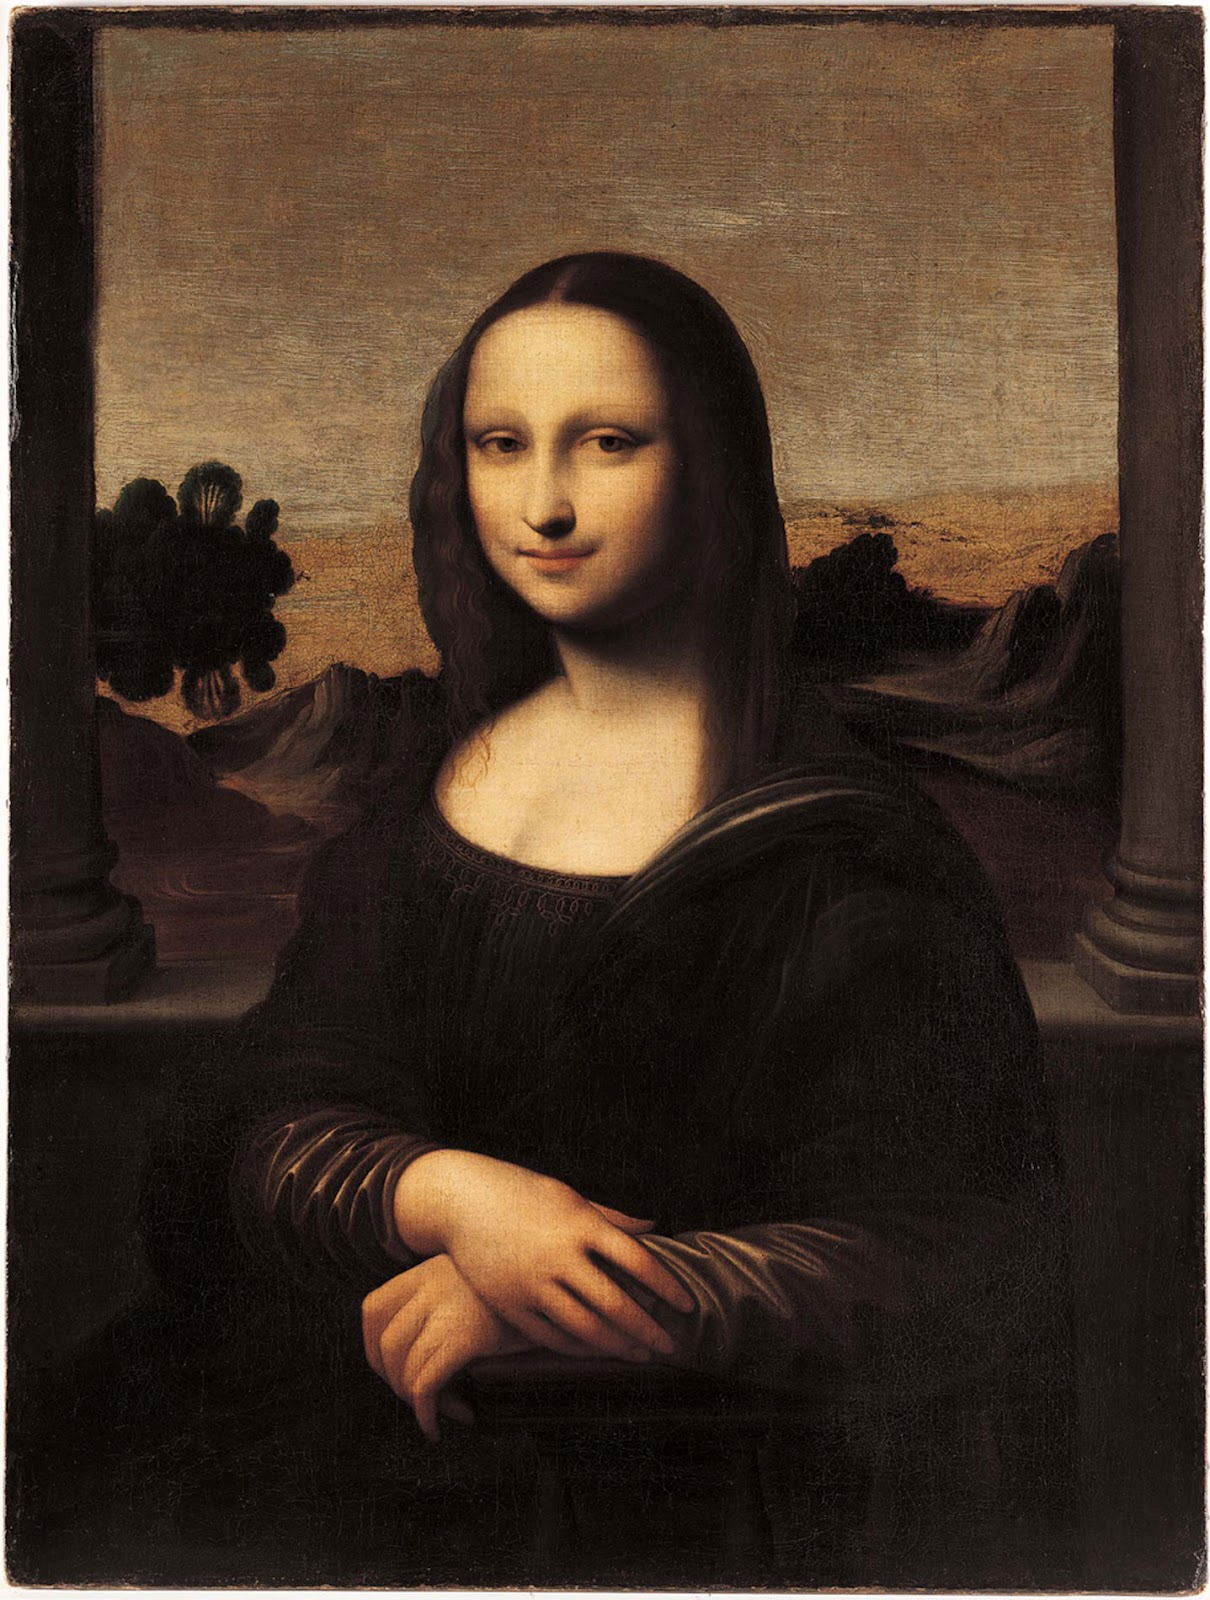 https://upload.wikimedia.org/wikipedia/commons/b/bb/The_Isleworth_Mona_Lisa.jpg